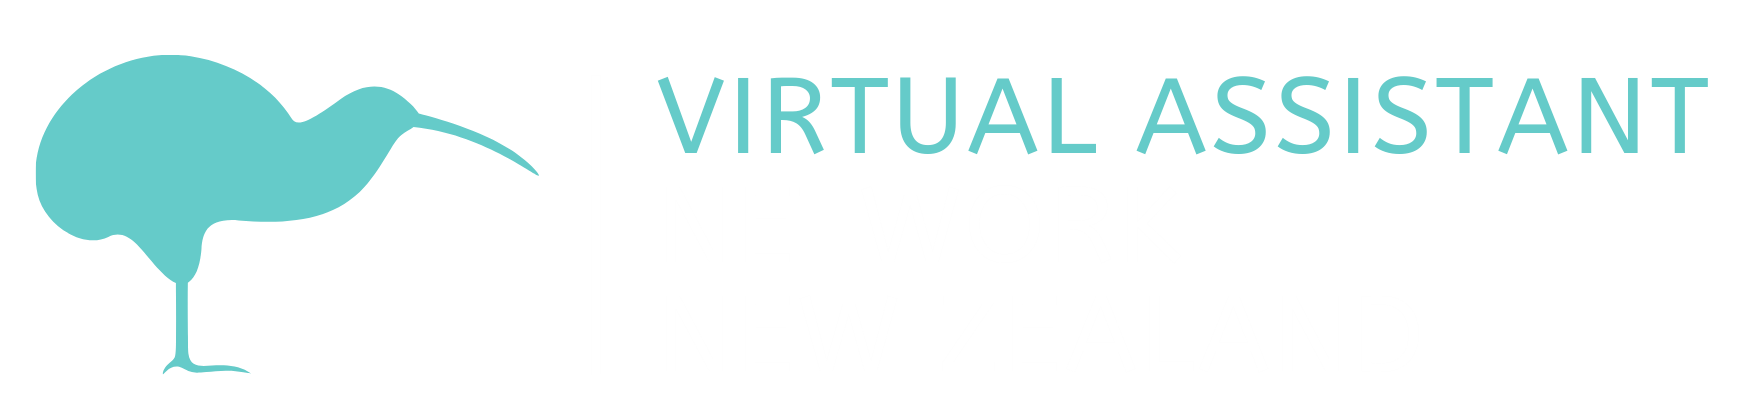 Virtual Assistant Network New Zealand - blue and white logo.png